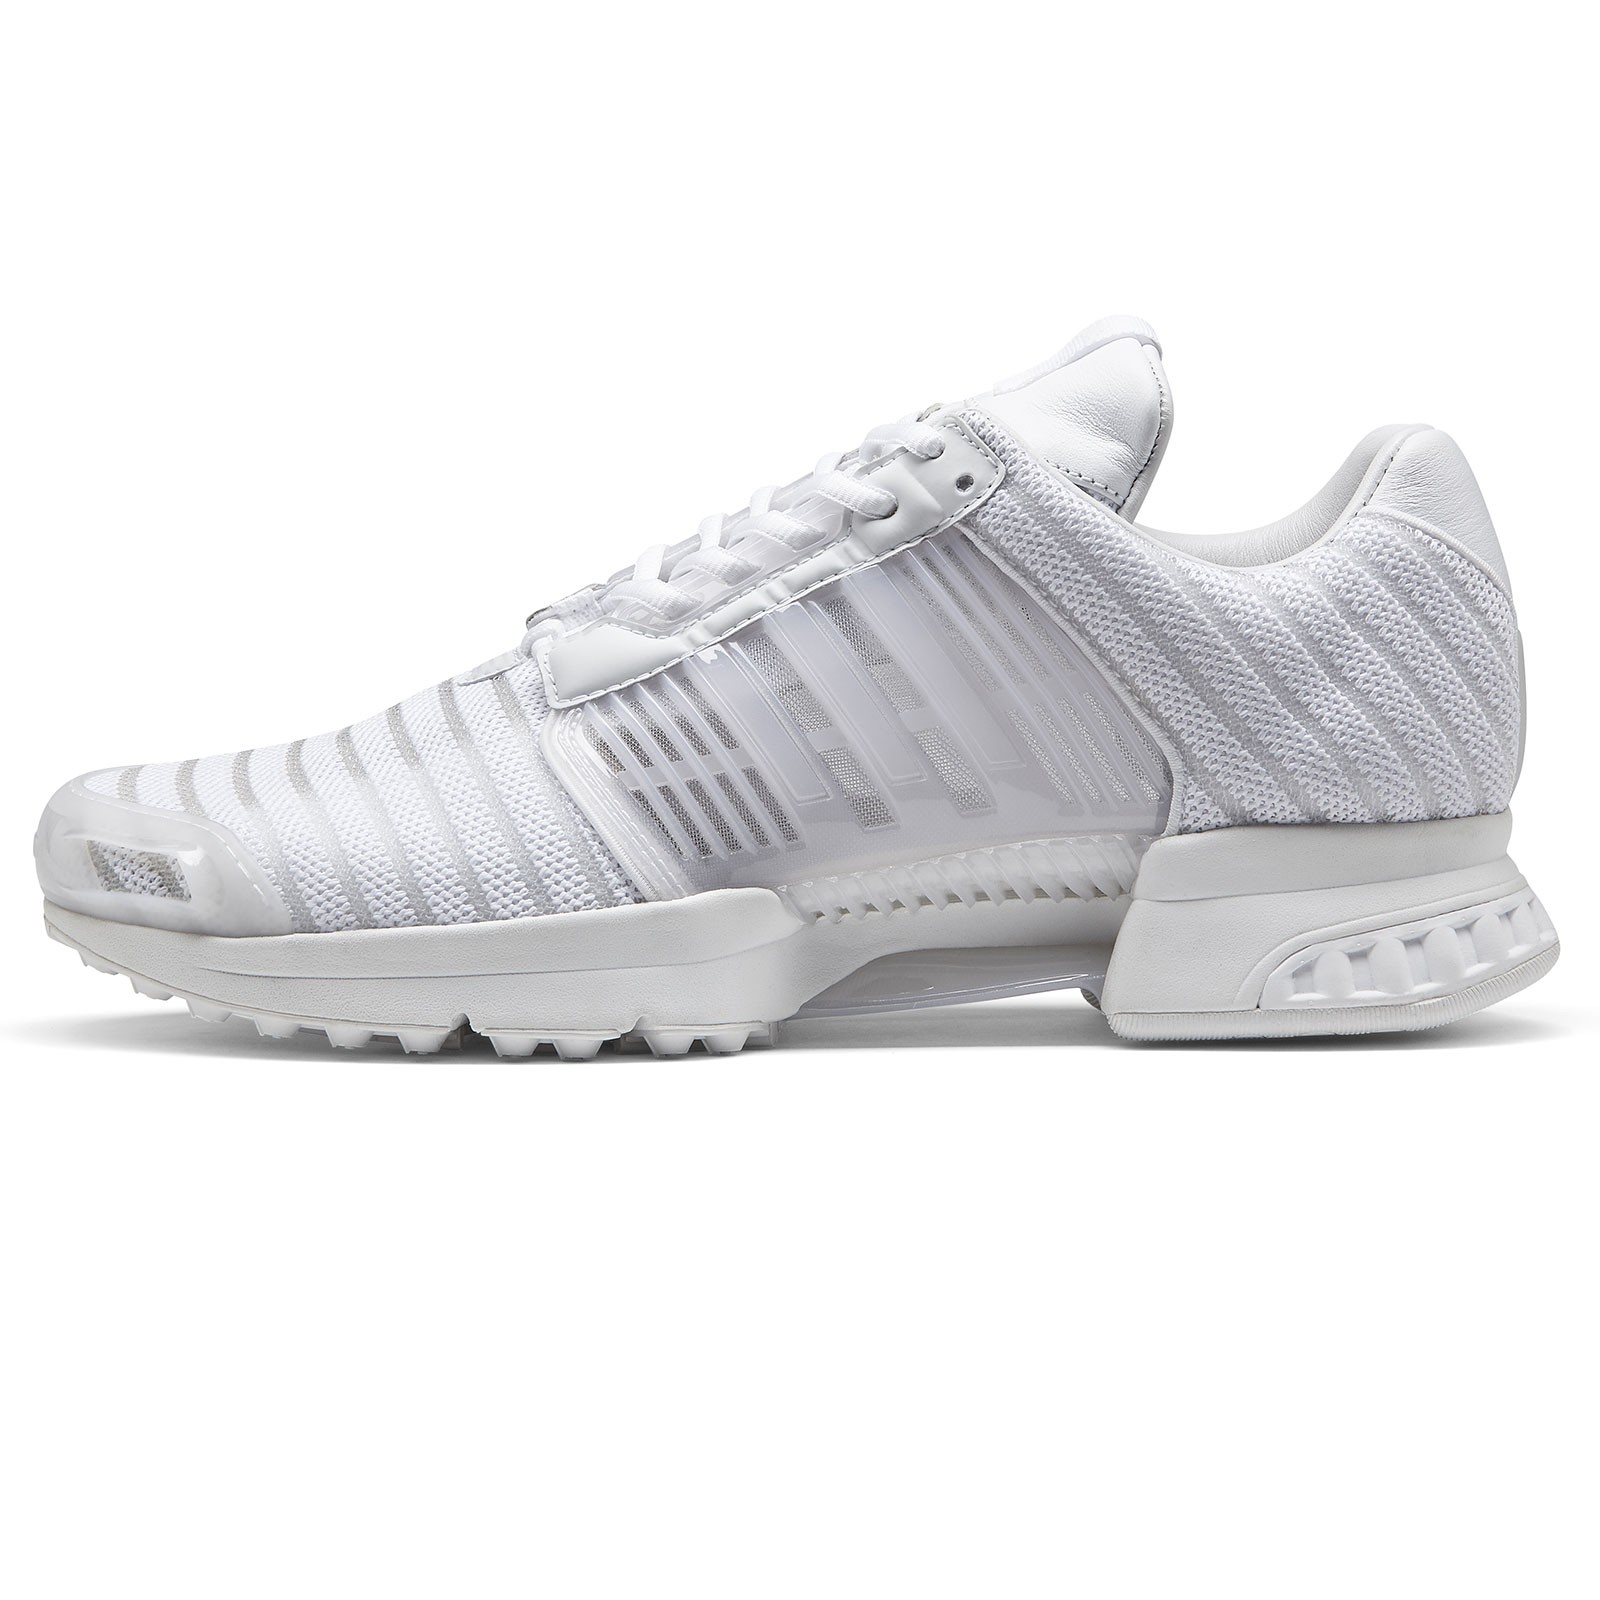 info for 30bfa 41cc0 Very Goods  ADIDAS CONSORTIUM SNEAKER EXCHANGE - SNEAKERBOY X WISH  CLIMACOOL 1 PK BY3053 - Sneakers76